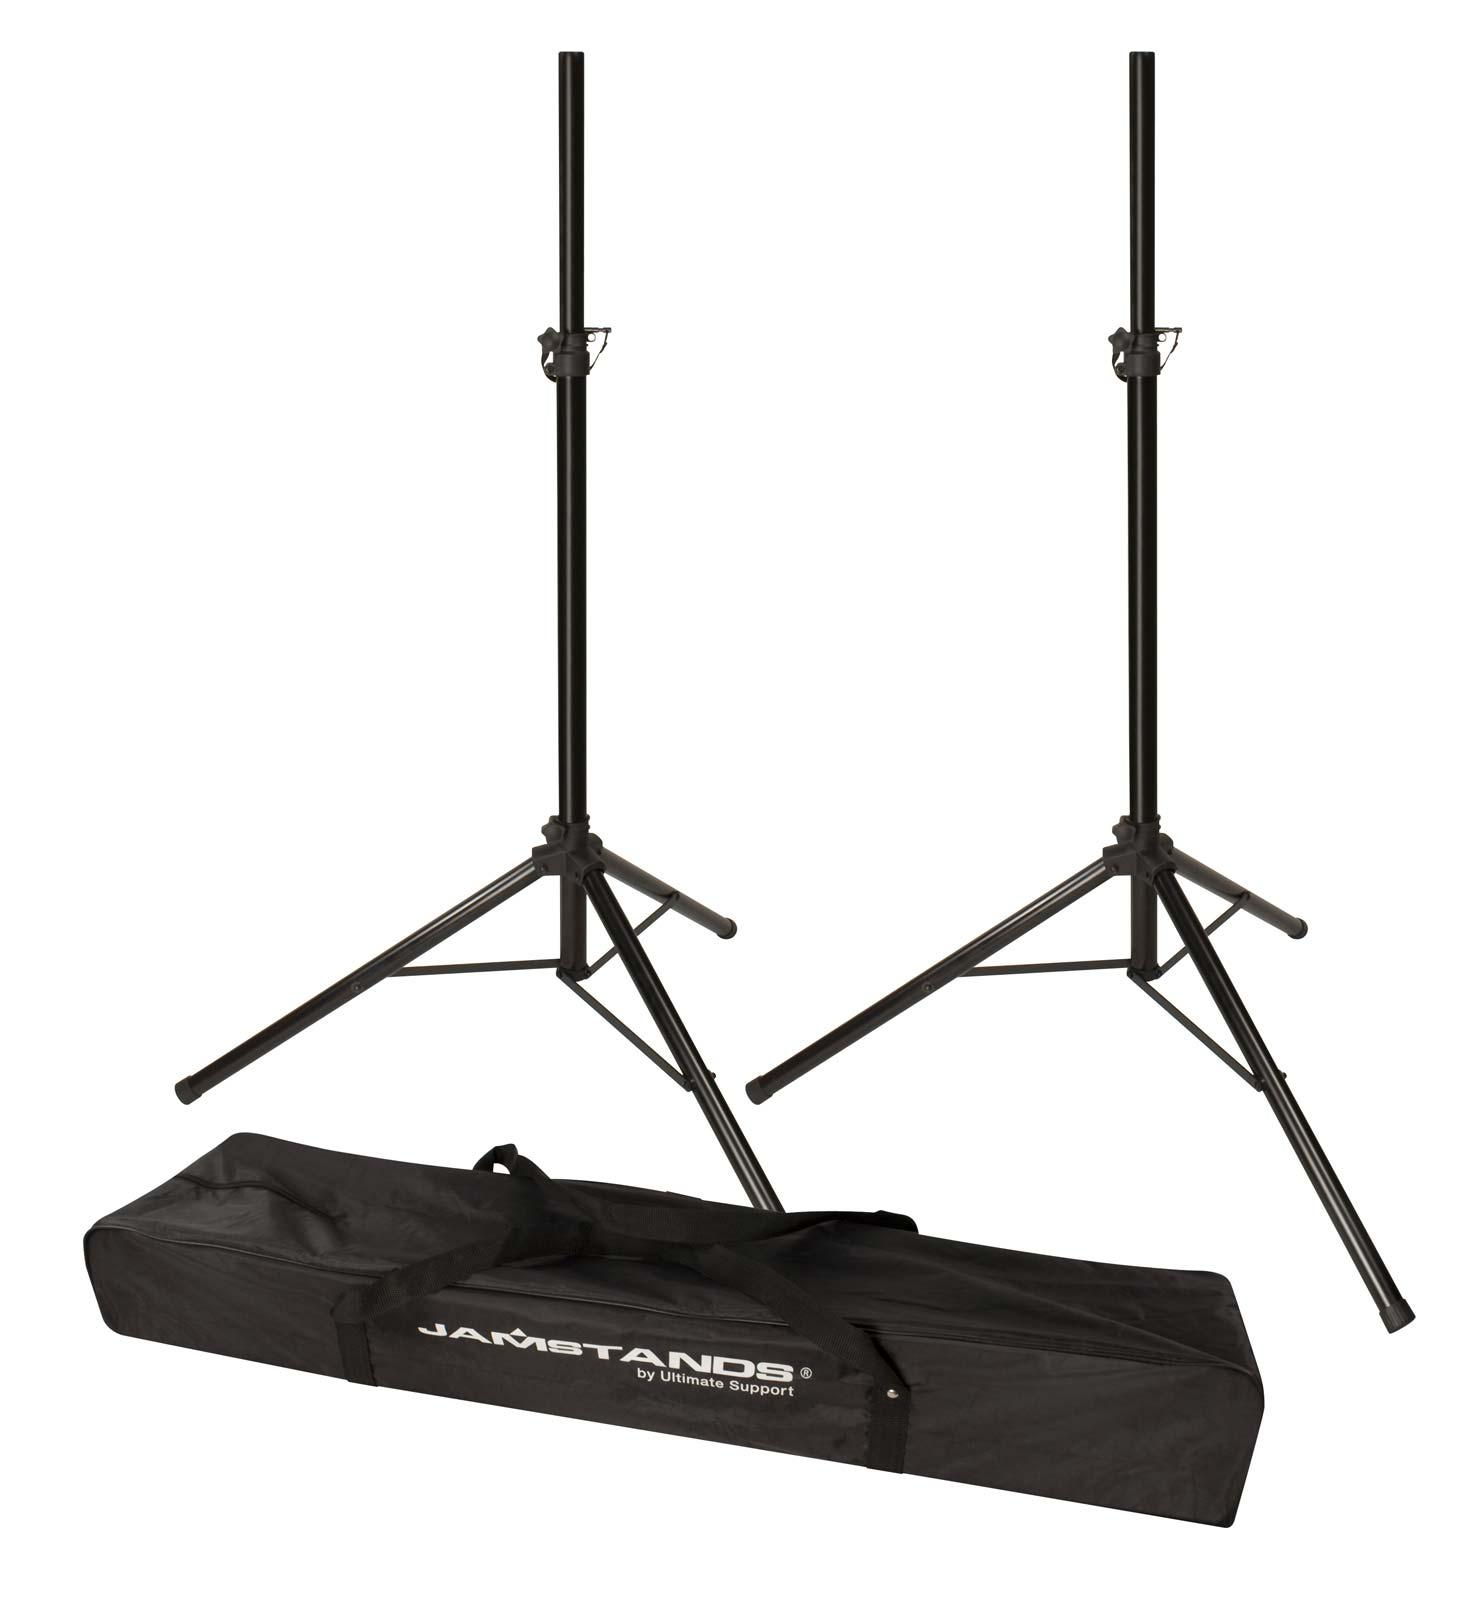 ultimate support js ts50 2 jamstands tripod speaker stand pair agiprodj. Black Bedroom Furniture Sets. Home Design Ideas